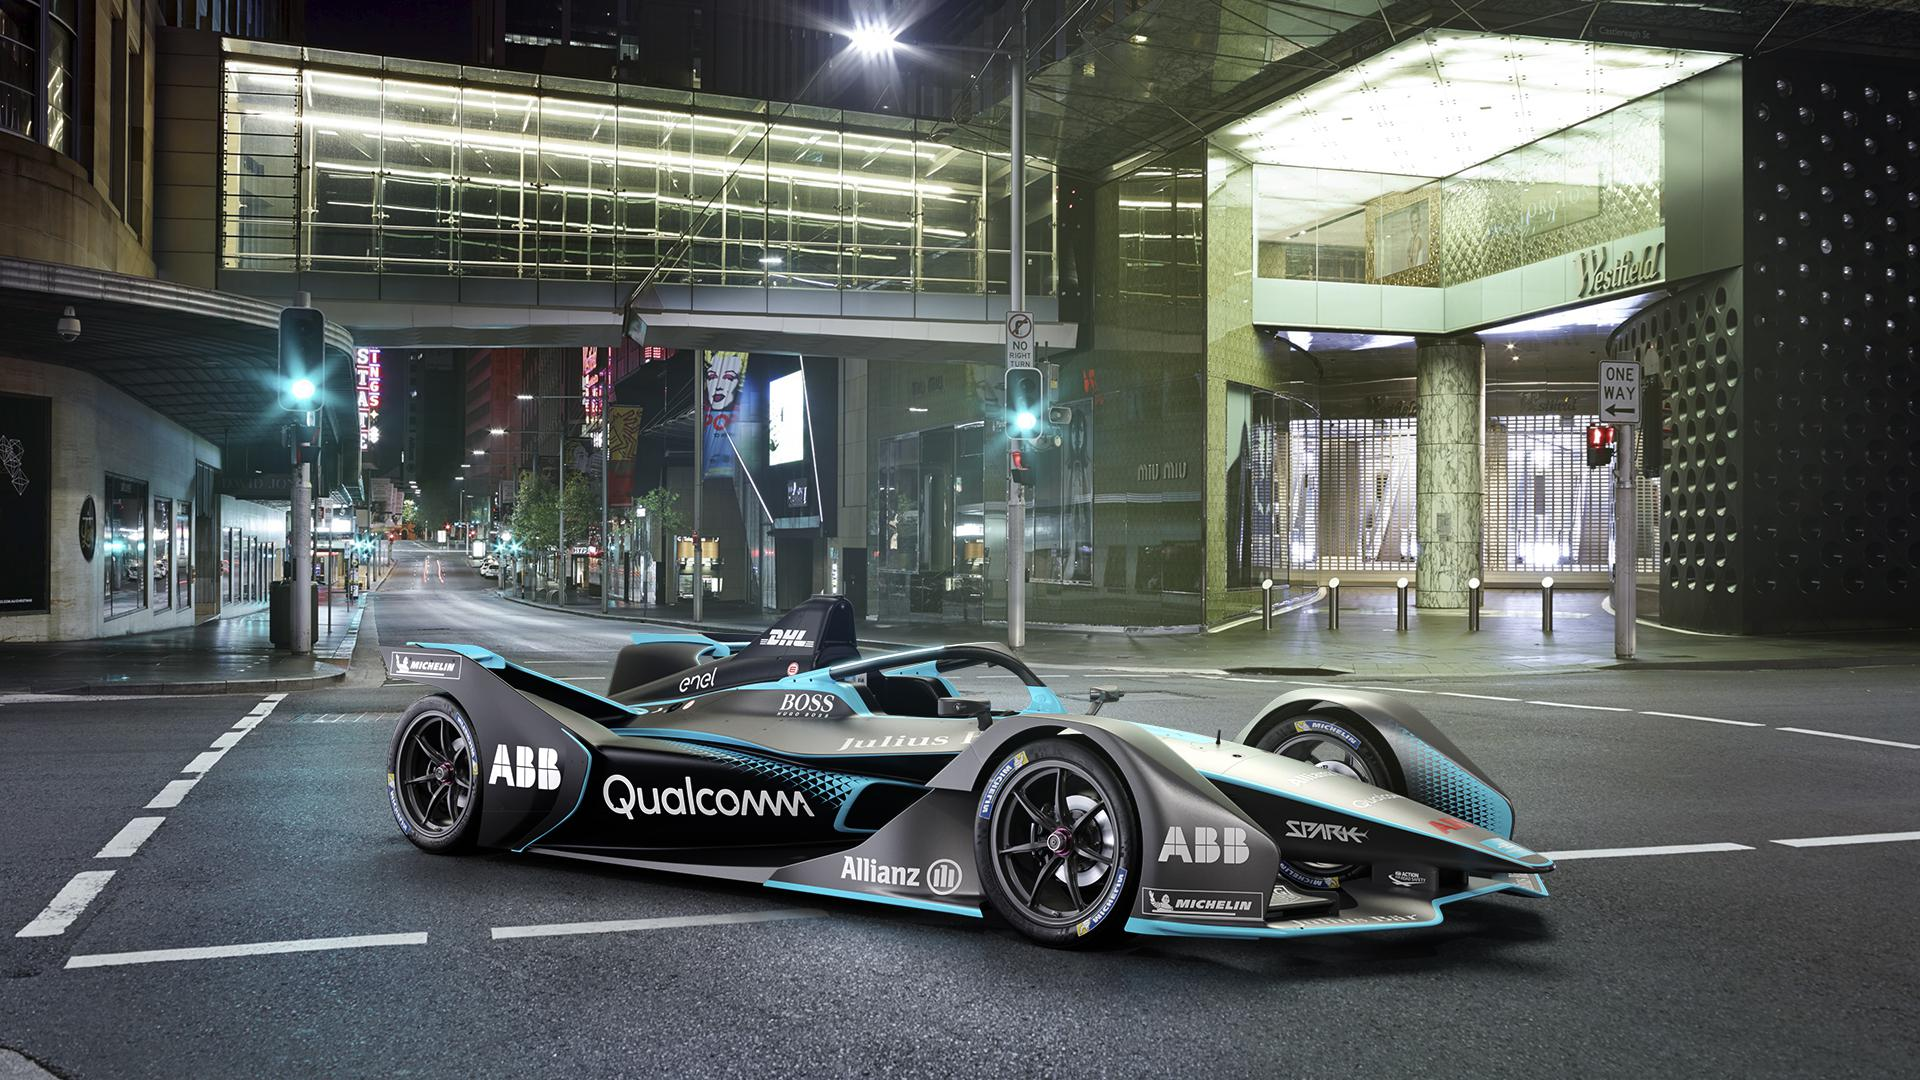 Formula E released images of their stunning new car this week